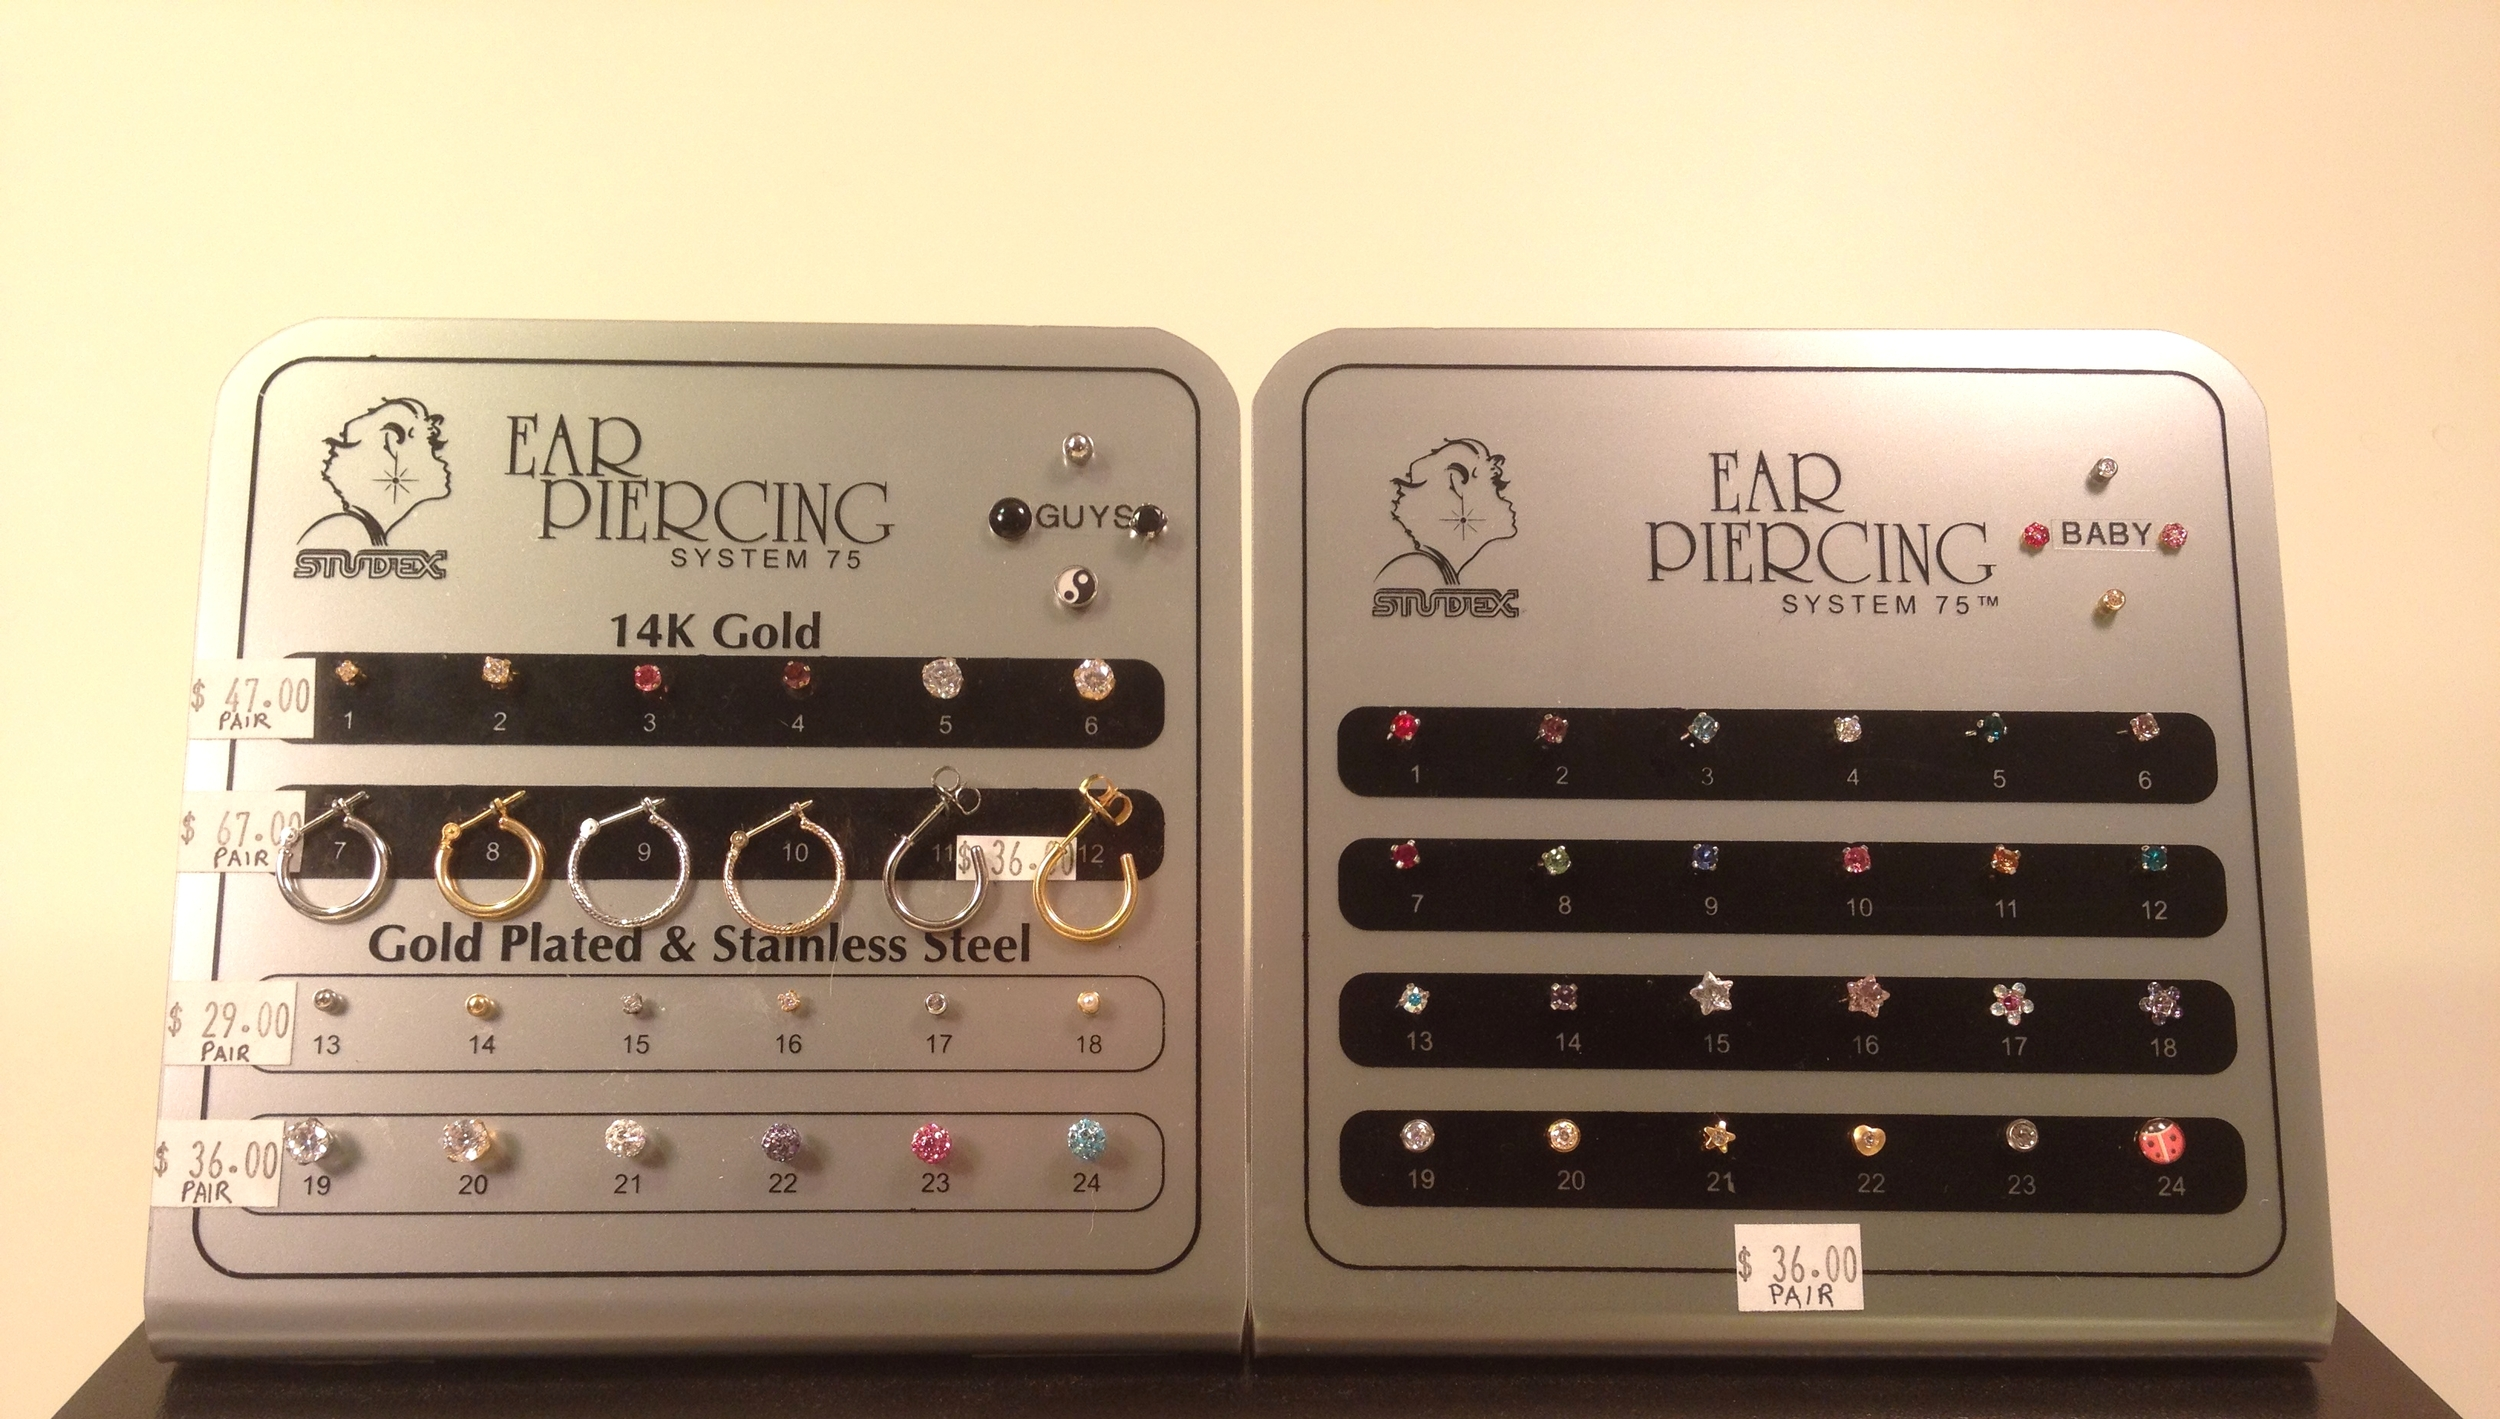 Over 56 choices in piercing jewelry